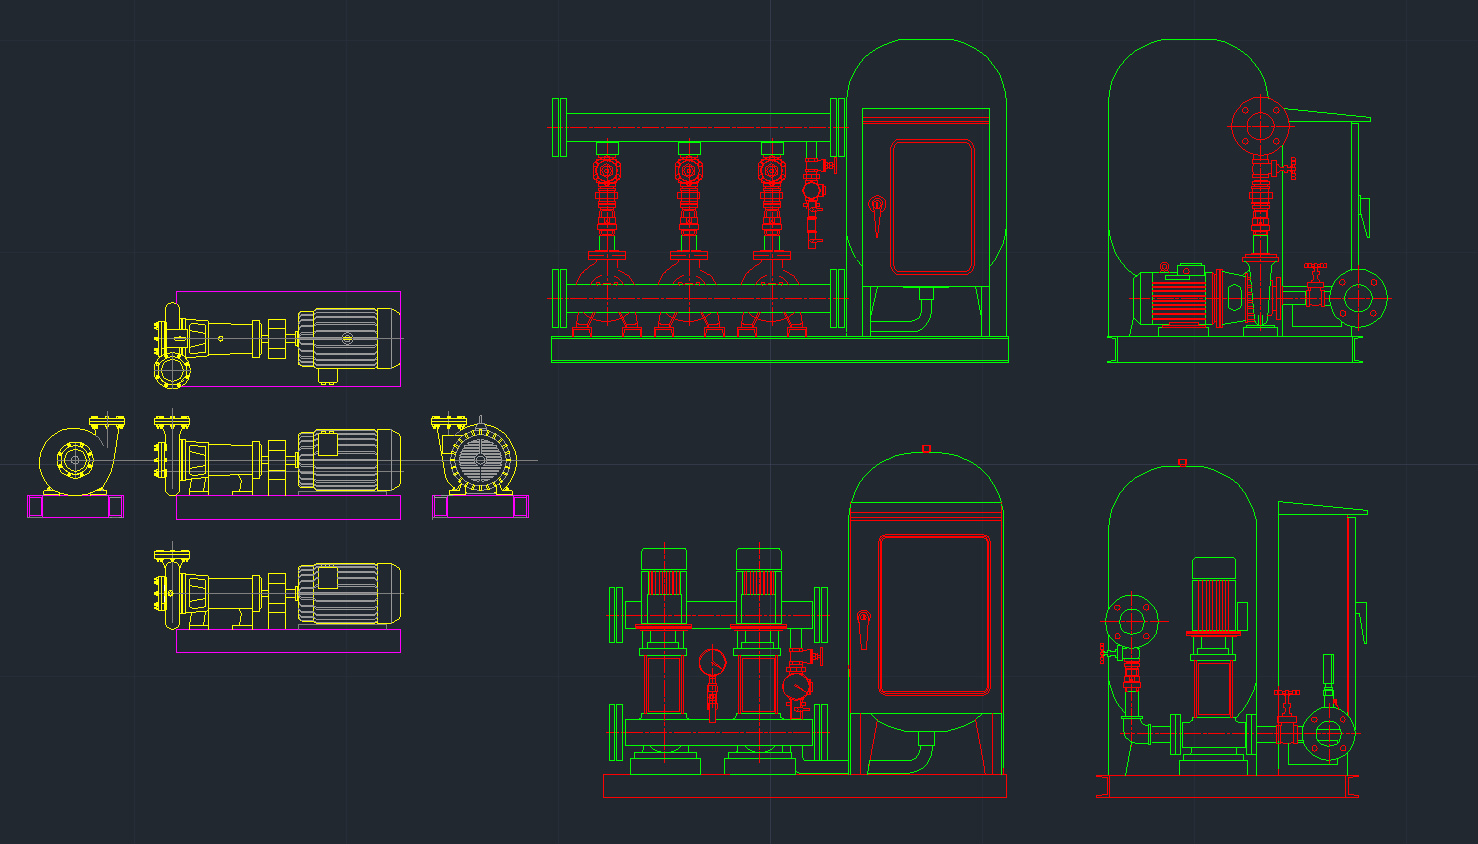 Autocad Pump Diagram Trusted Wiring Diagrams File Booster Free Cad Block Symbol And Drawing Sample Electrical Wire